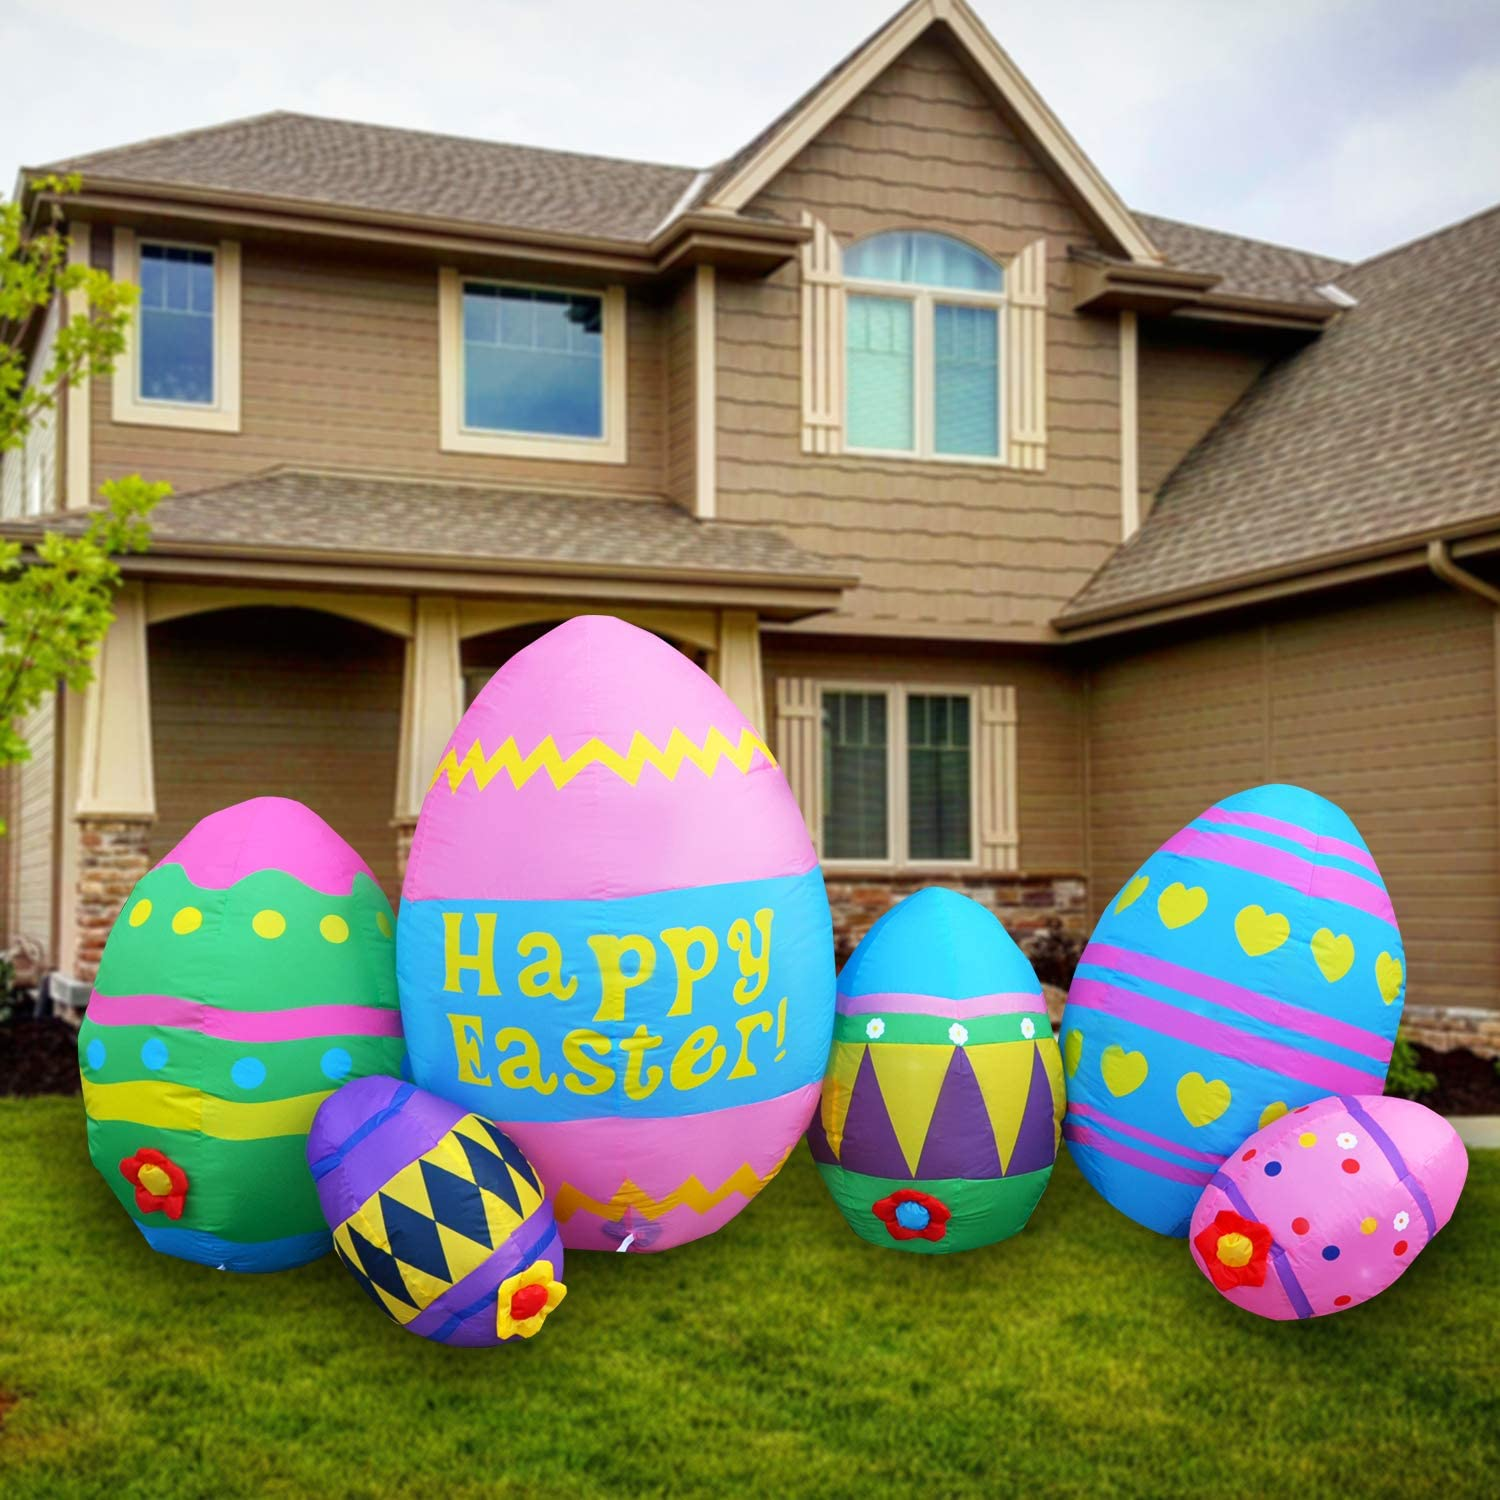 SEASONBLOW 8 Foot LED Light Long Beach Mall Easter Up Decoration Excellence Eggs Inflatable